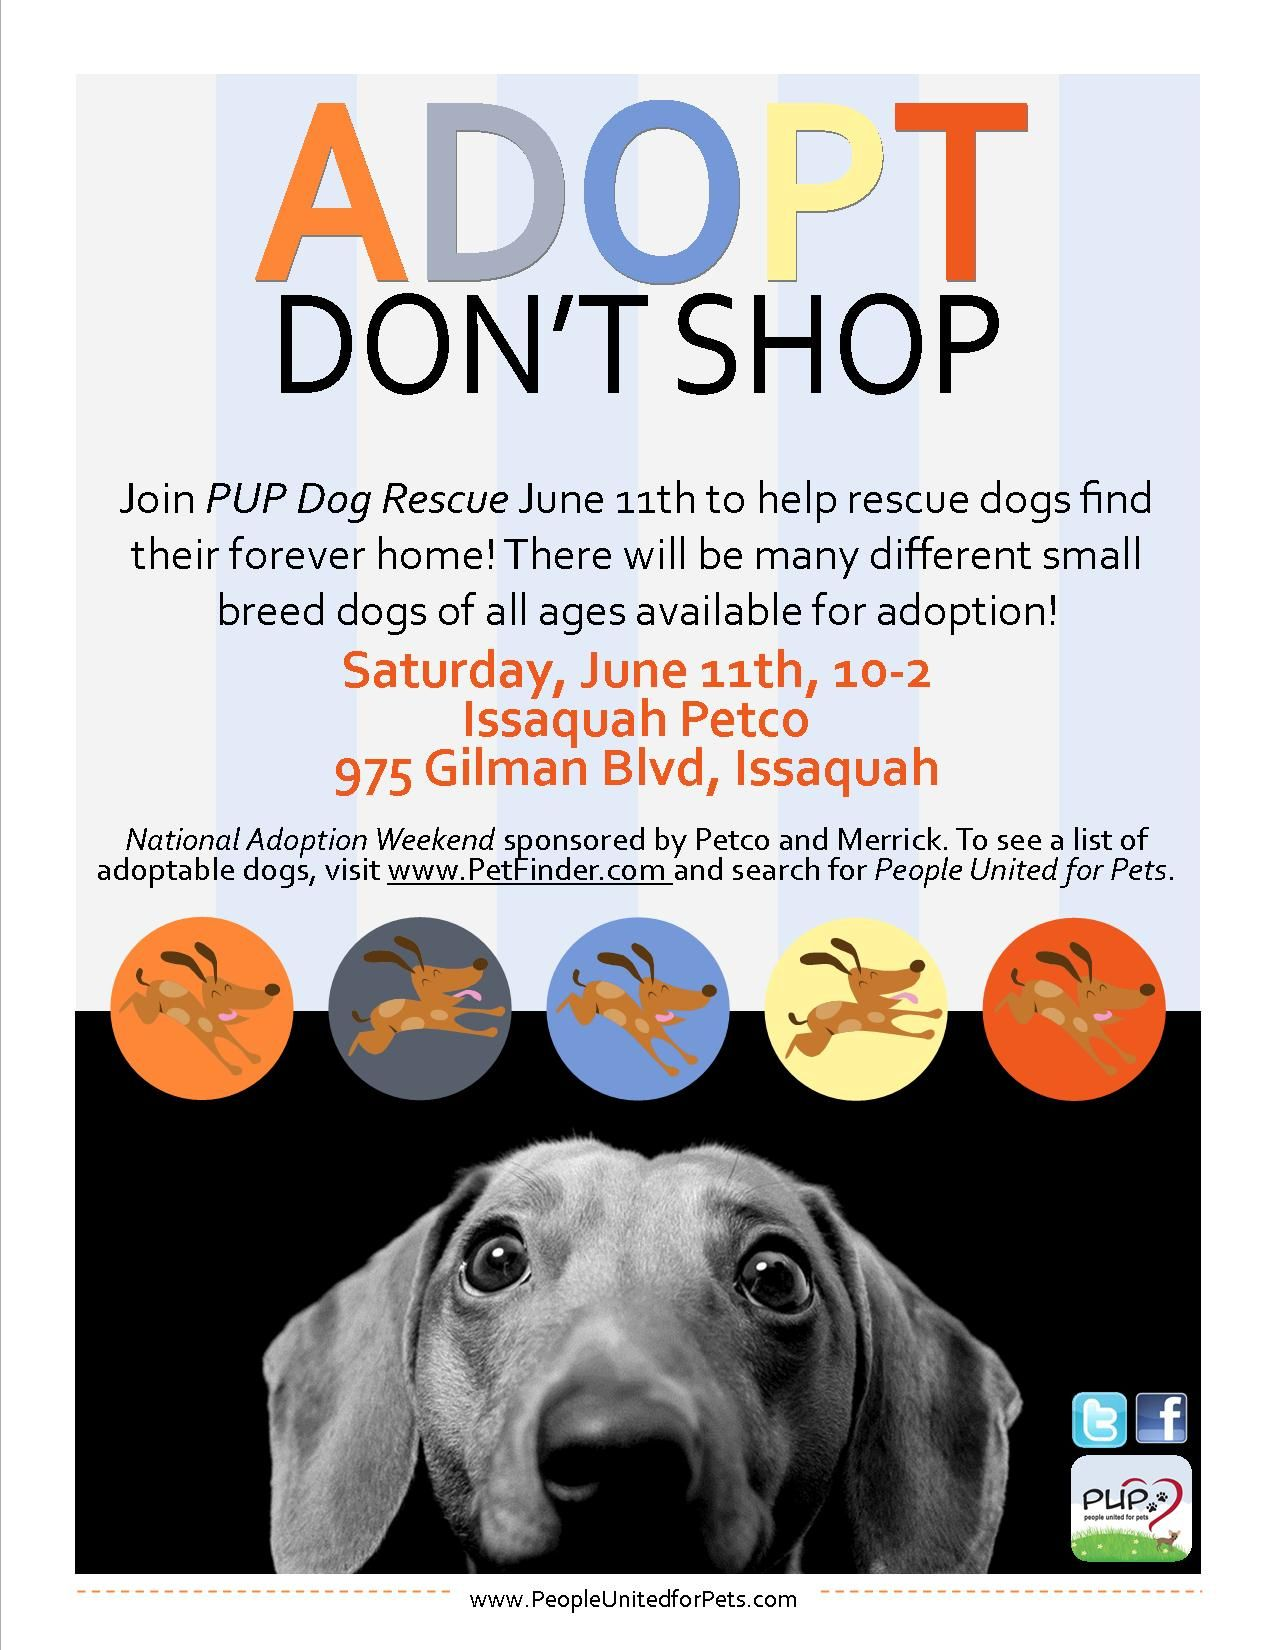 Rescue Dogs Puppies For Adoption Pup Dog Rescue Flyers Fundraising Pinterest Dogs Rescue